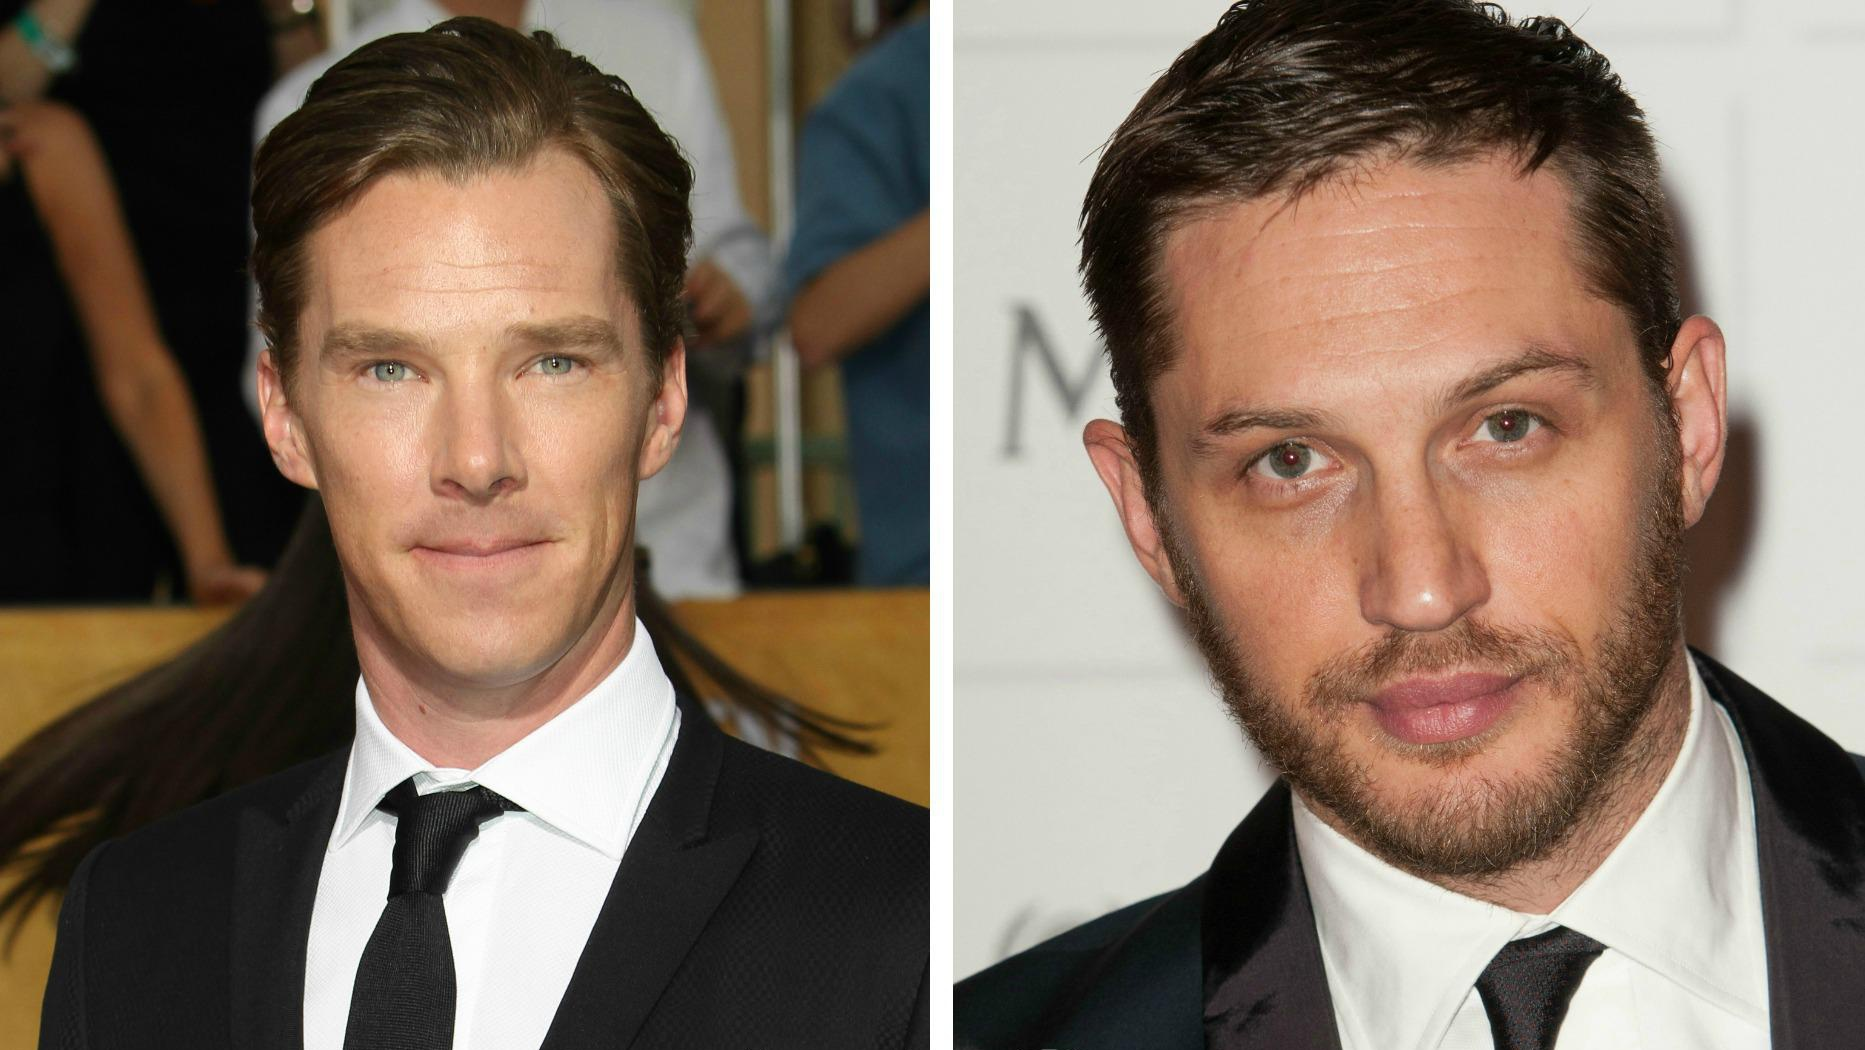 Who's hotter: Benedict Cumberbatch vs. Tom Hardy